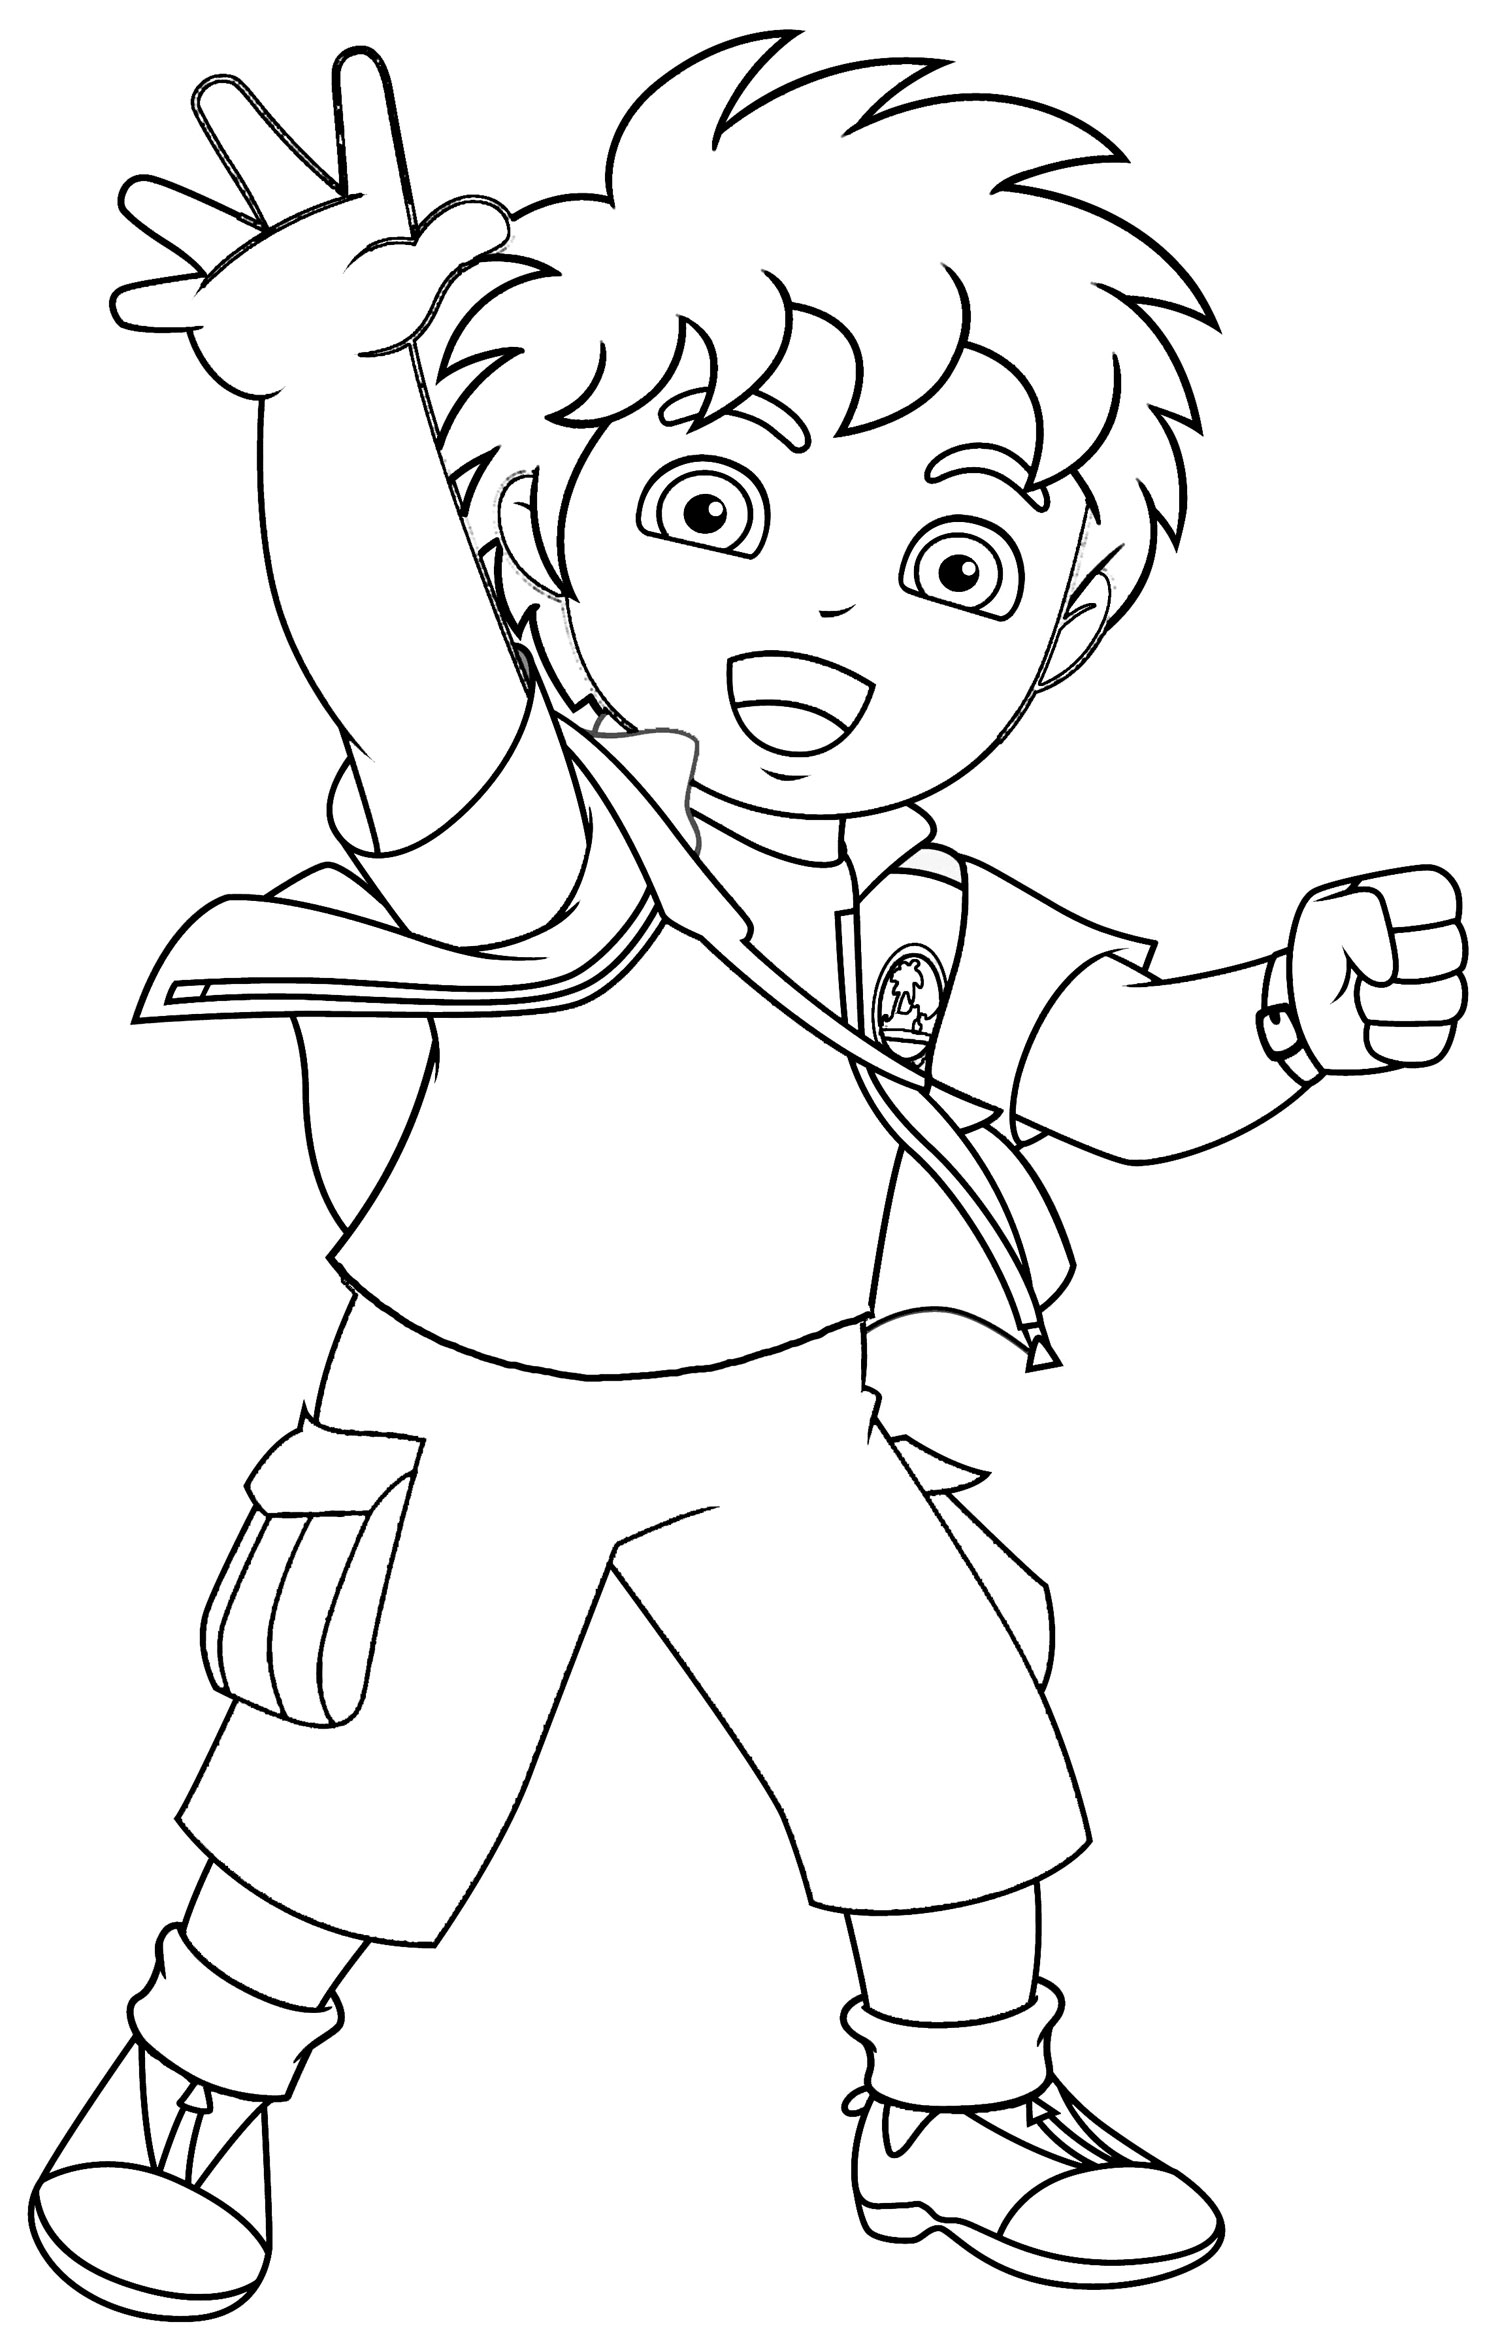 Colouring Pages To Print For Free : Free printable diego coloring pages for kids